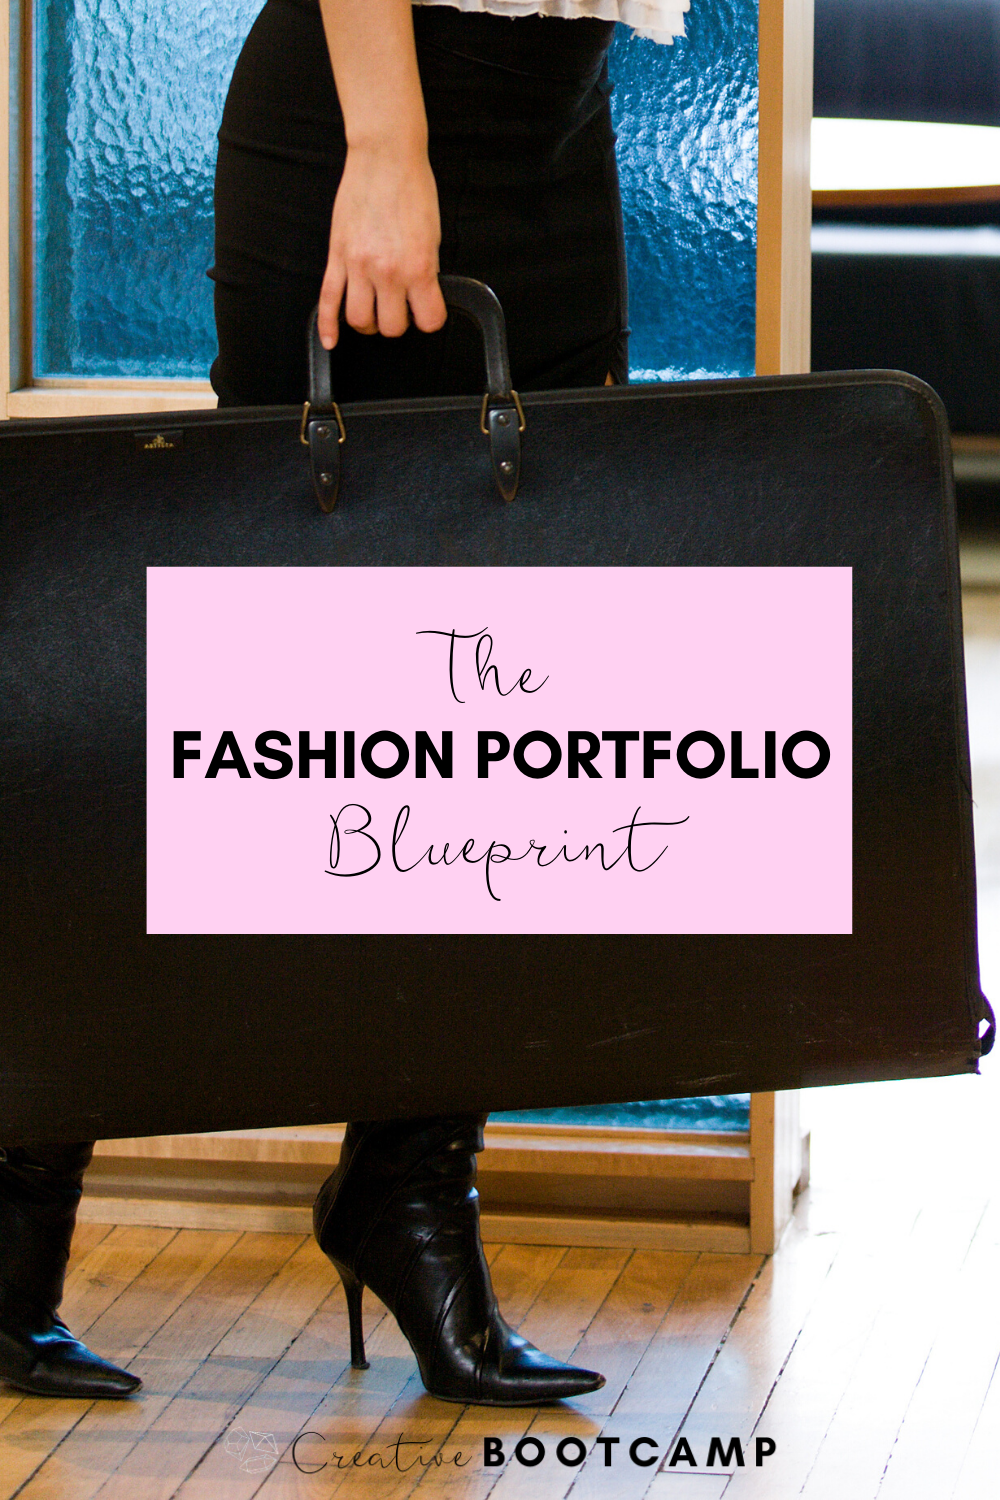 Present yourself as professional as possible with these classic and timeless designs and tips. Stop struggling and make your fashion portfolio in an afternoon! #fashion #portfolio #course #tips #templates #howto #blueprint